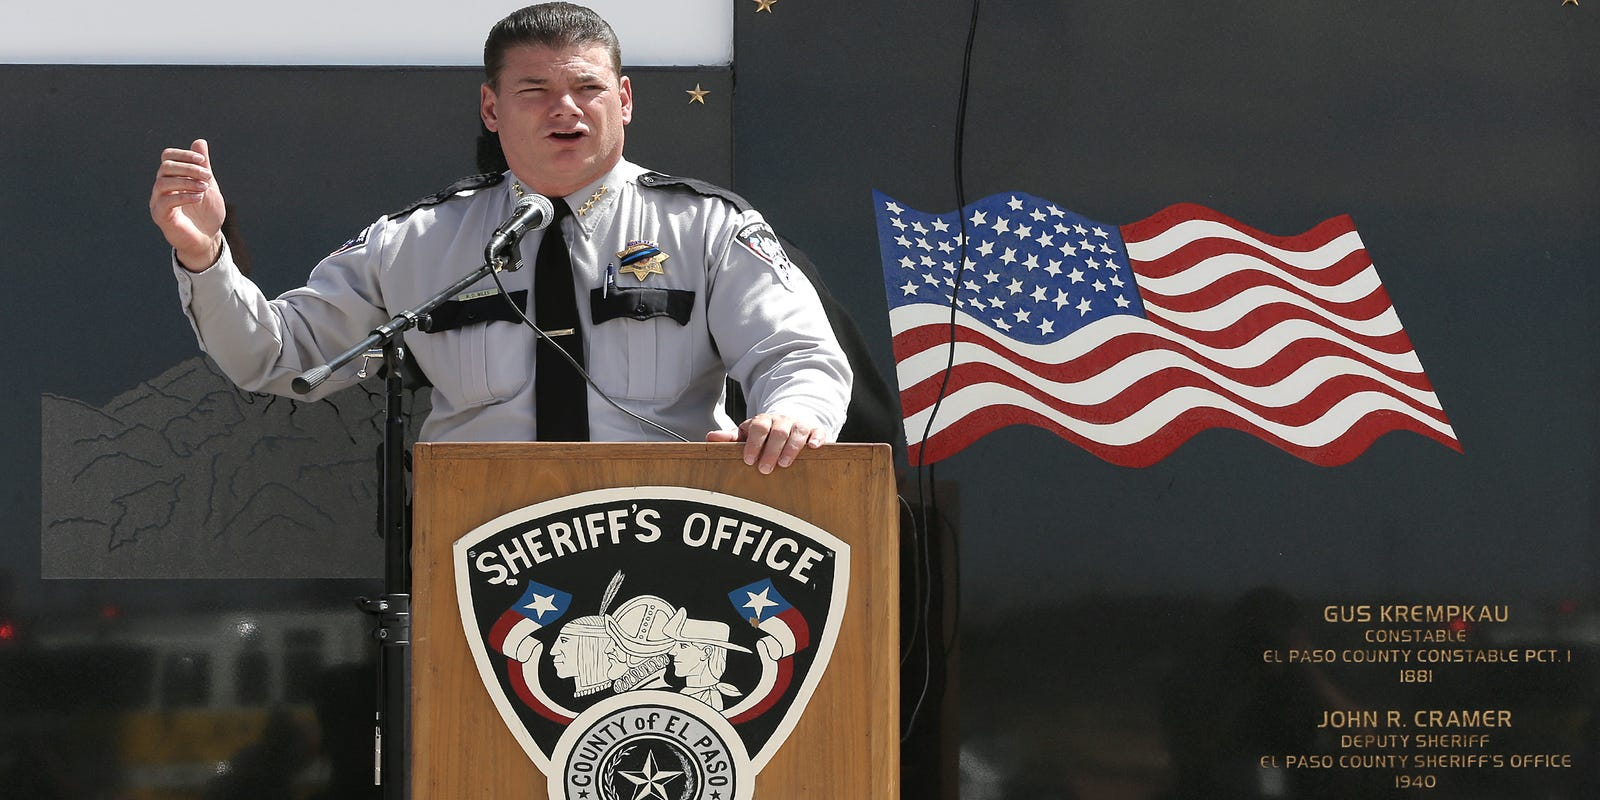 Three veteran law enforcement officers vie for El Paso County sheriff seat